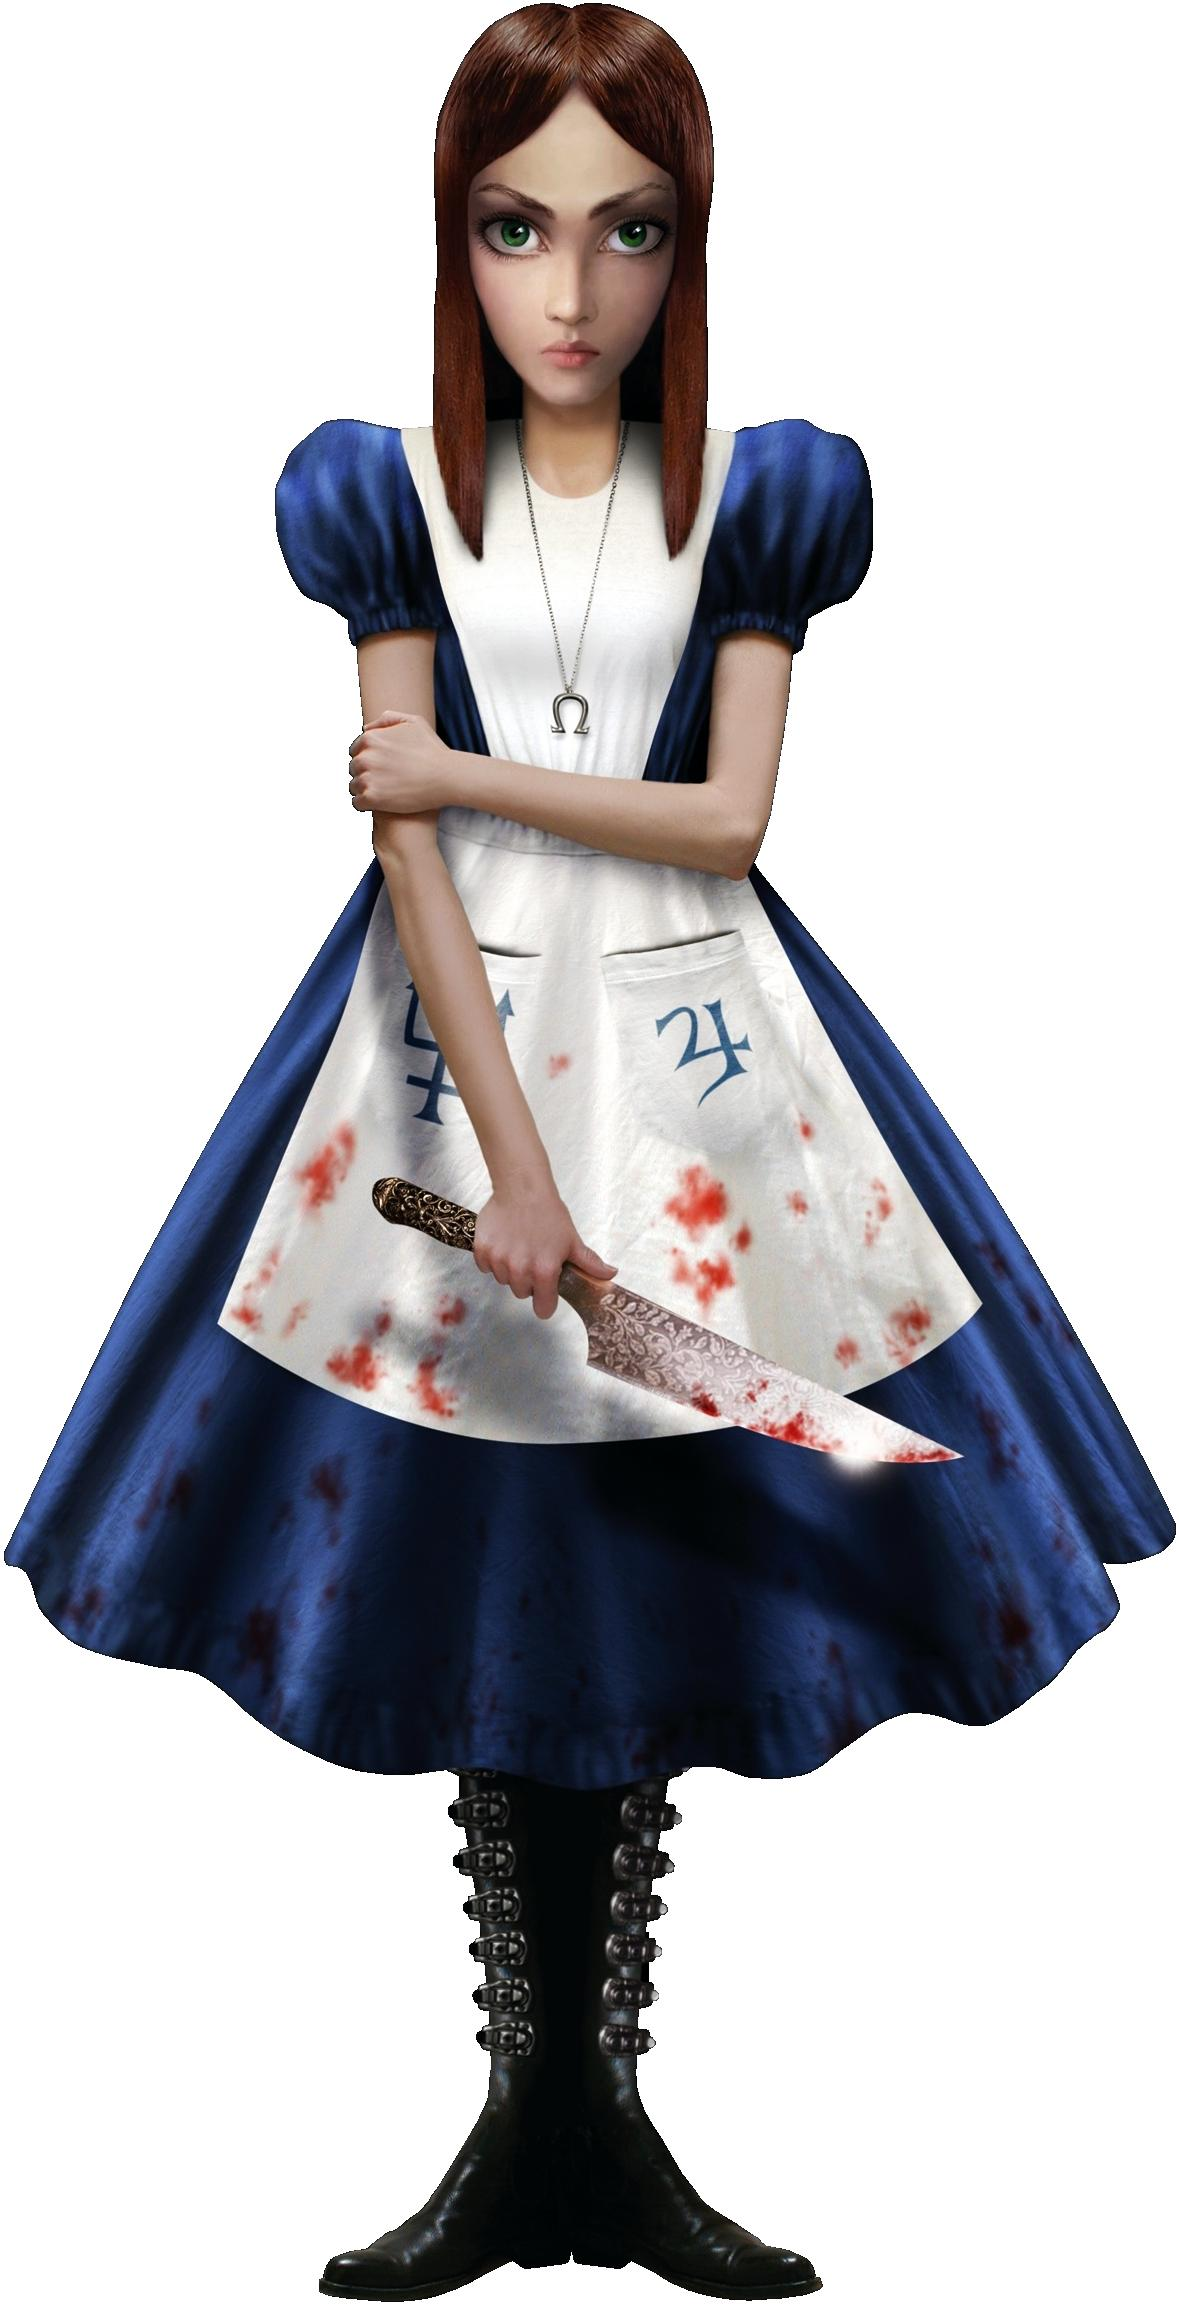 Alice McGee in Wonderland game per PC e PS3 Madness Returns